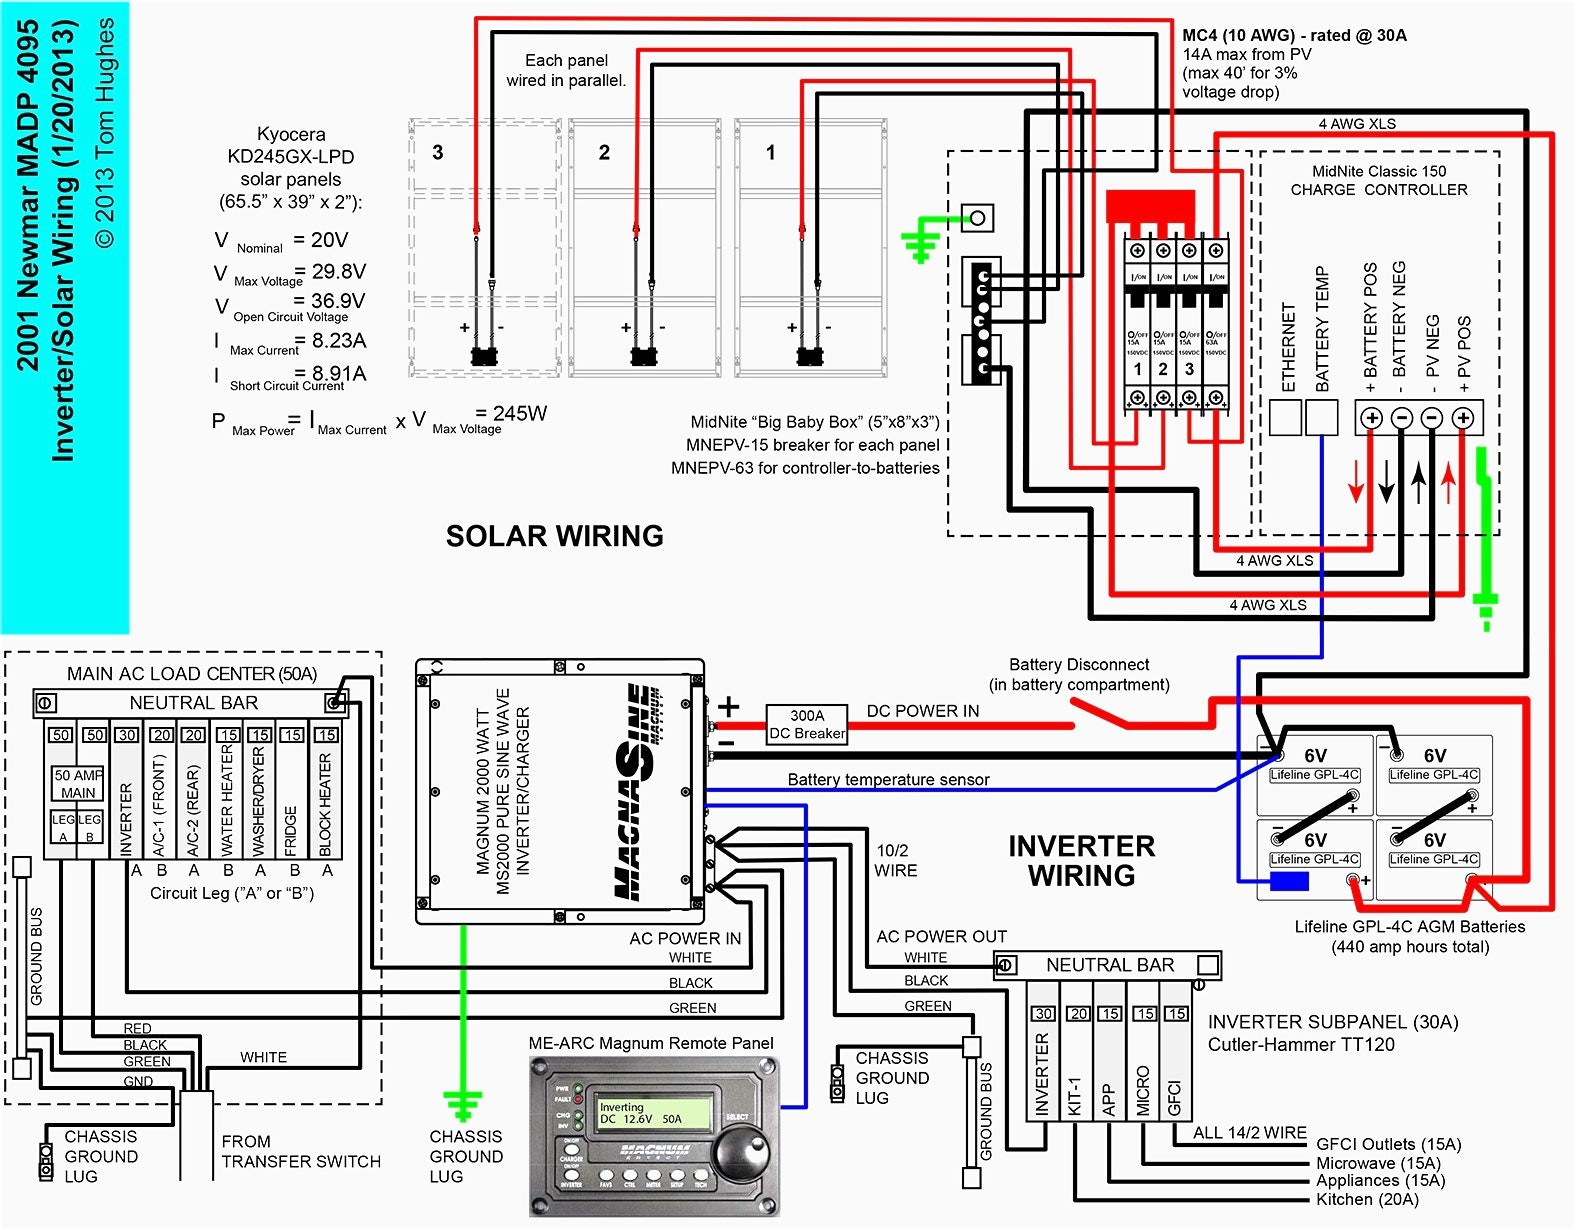 holiday rambler wiring schematic Download-Monaco Dynasty Wiring Diagram Lovely Holiday Rambler Wiring Schematics Wiring Process Flow Chart Template 13-k